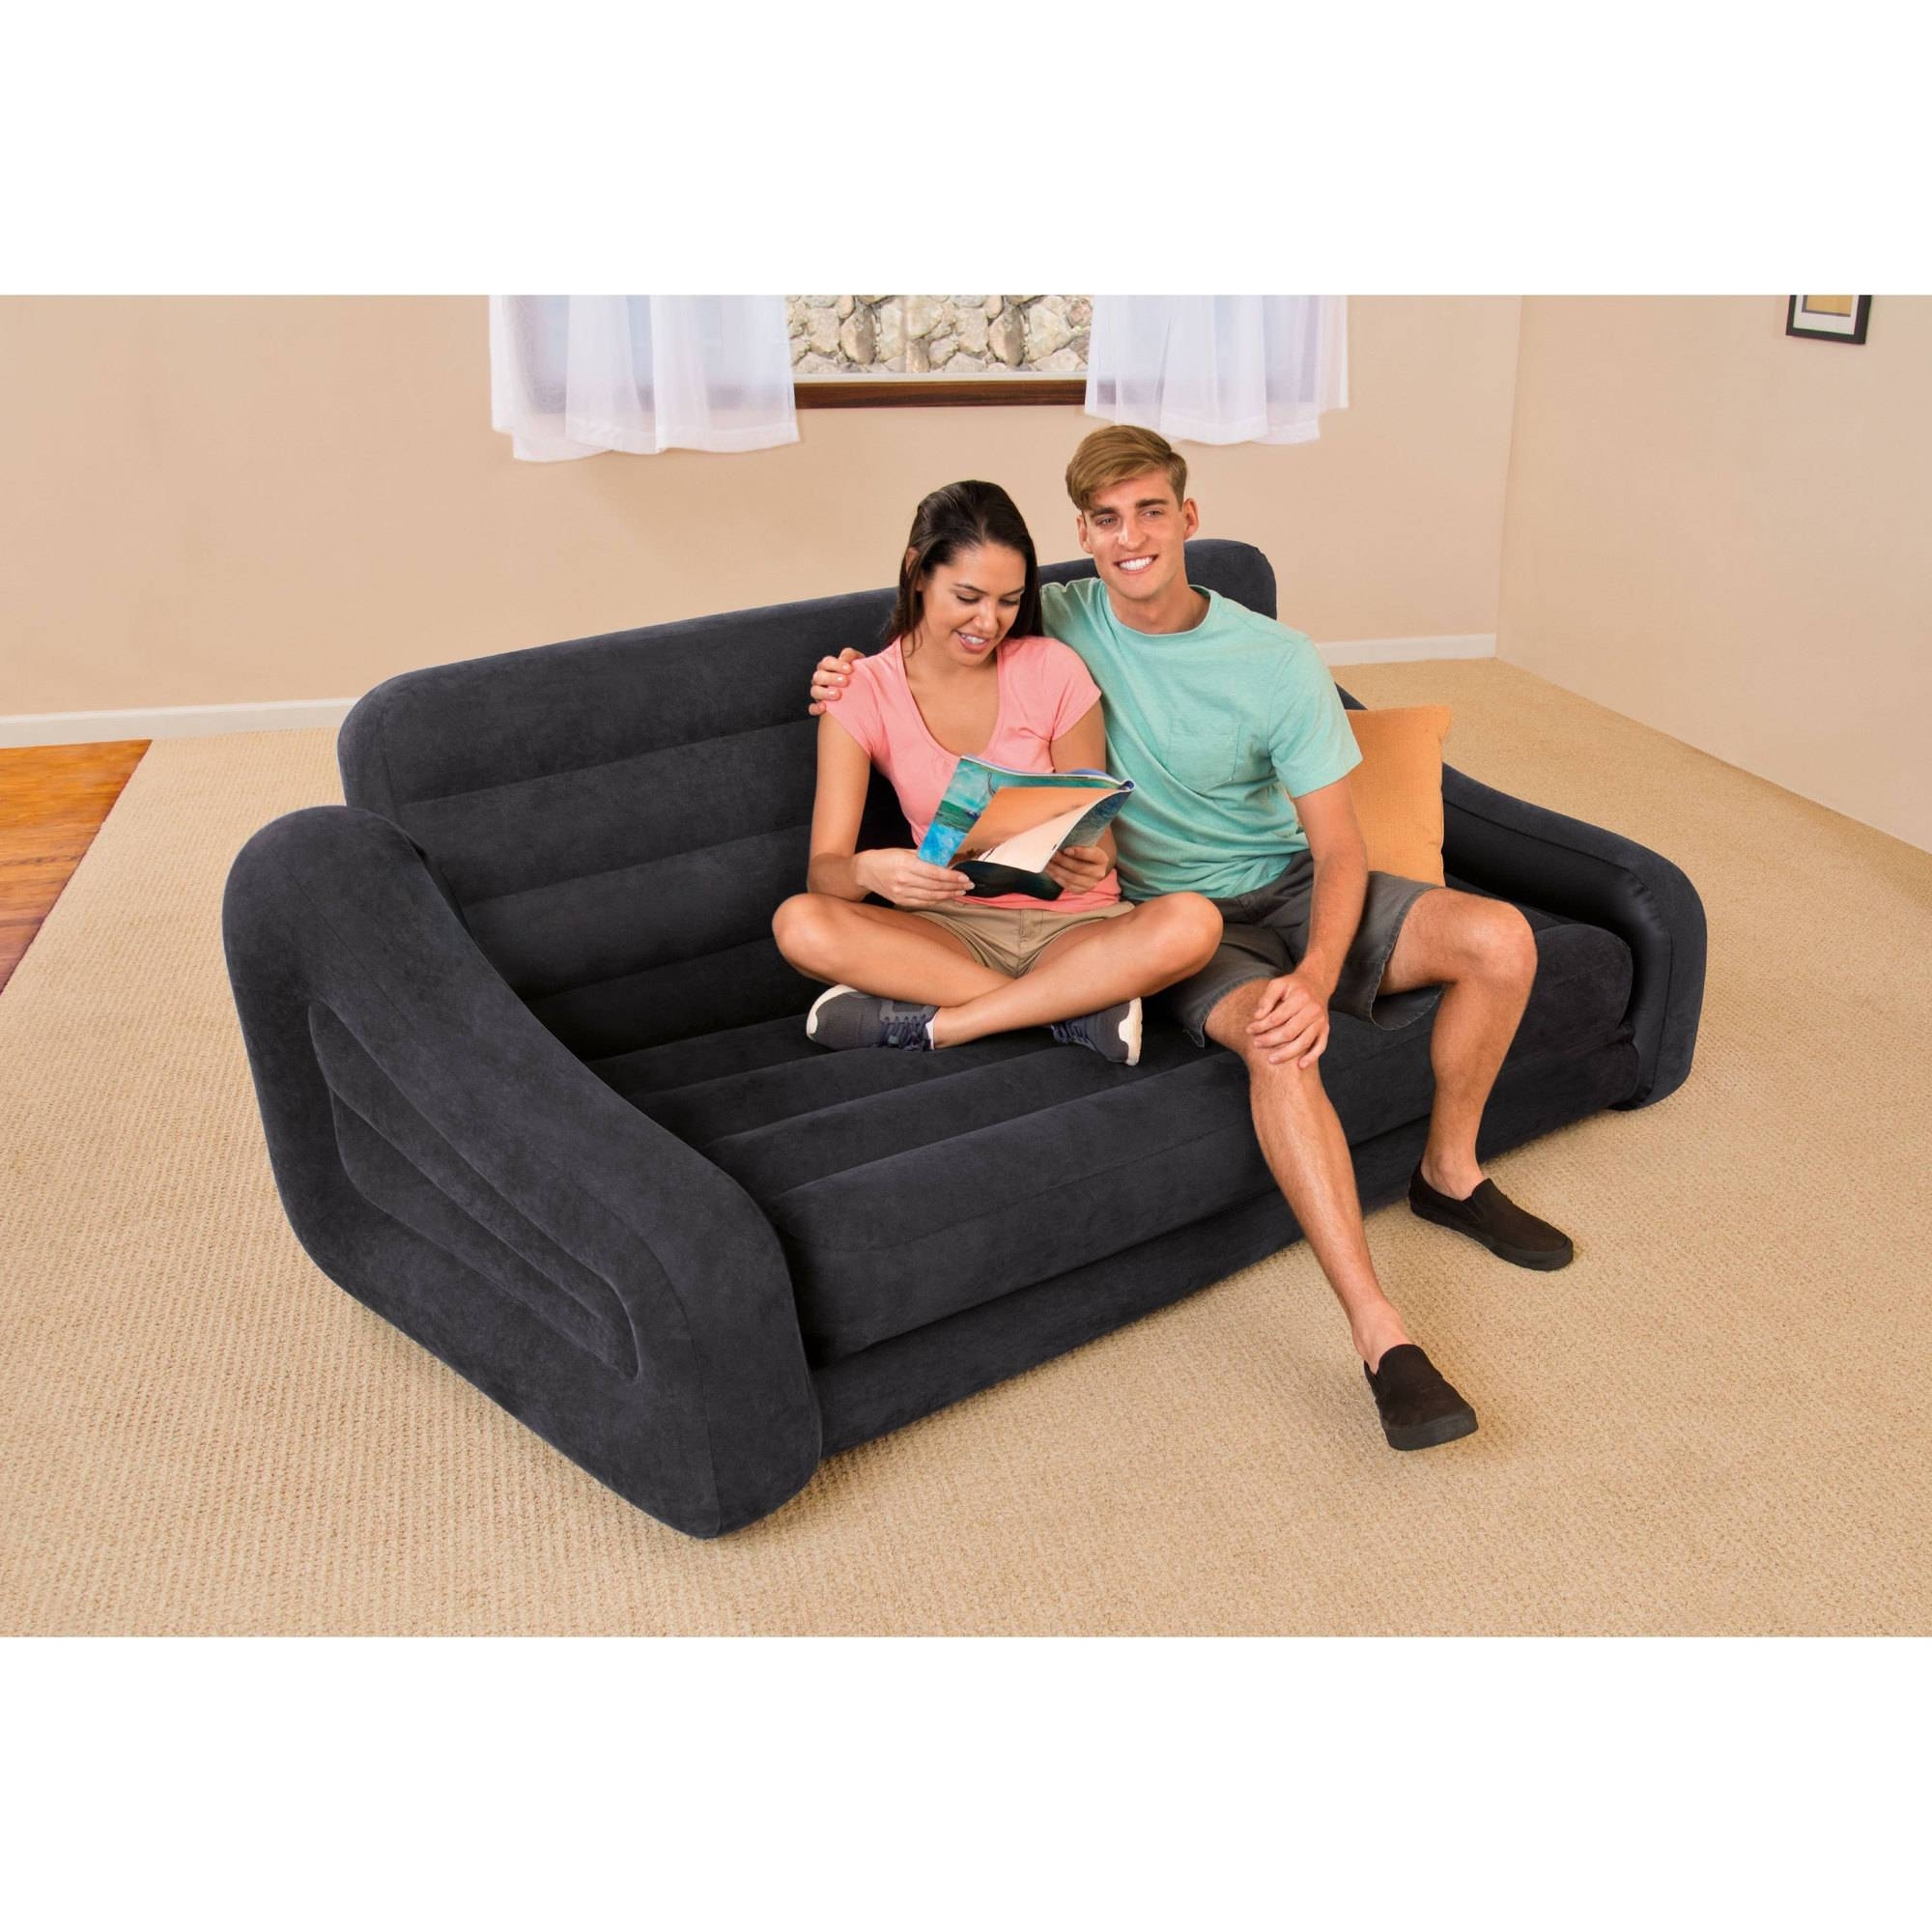 Intex Queen Inflatable Pull Out Sofa Bed - Walmart for Intex Air Sofa Beds (Image 12 of 15)